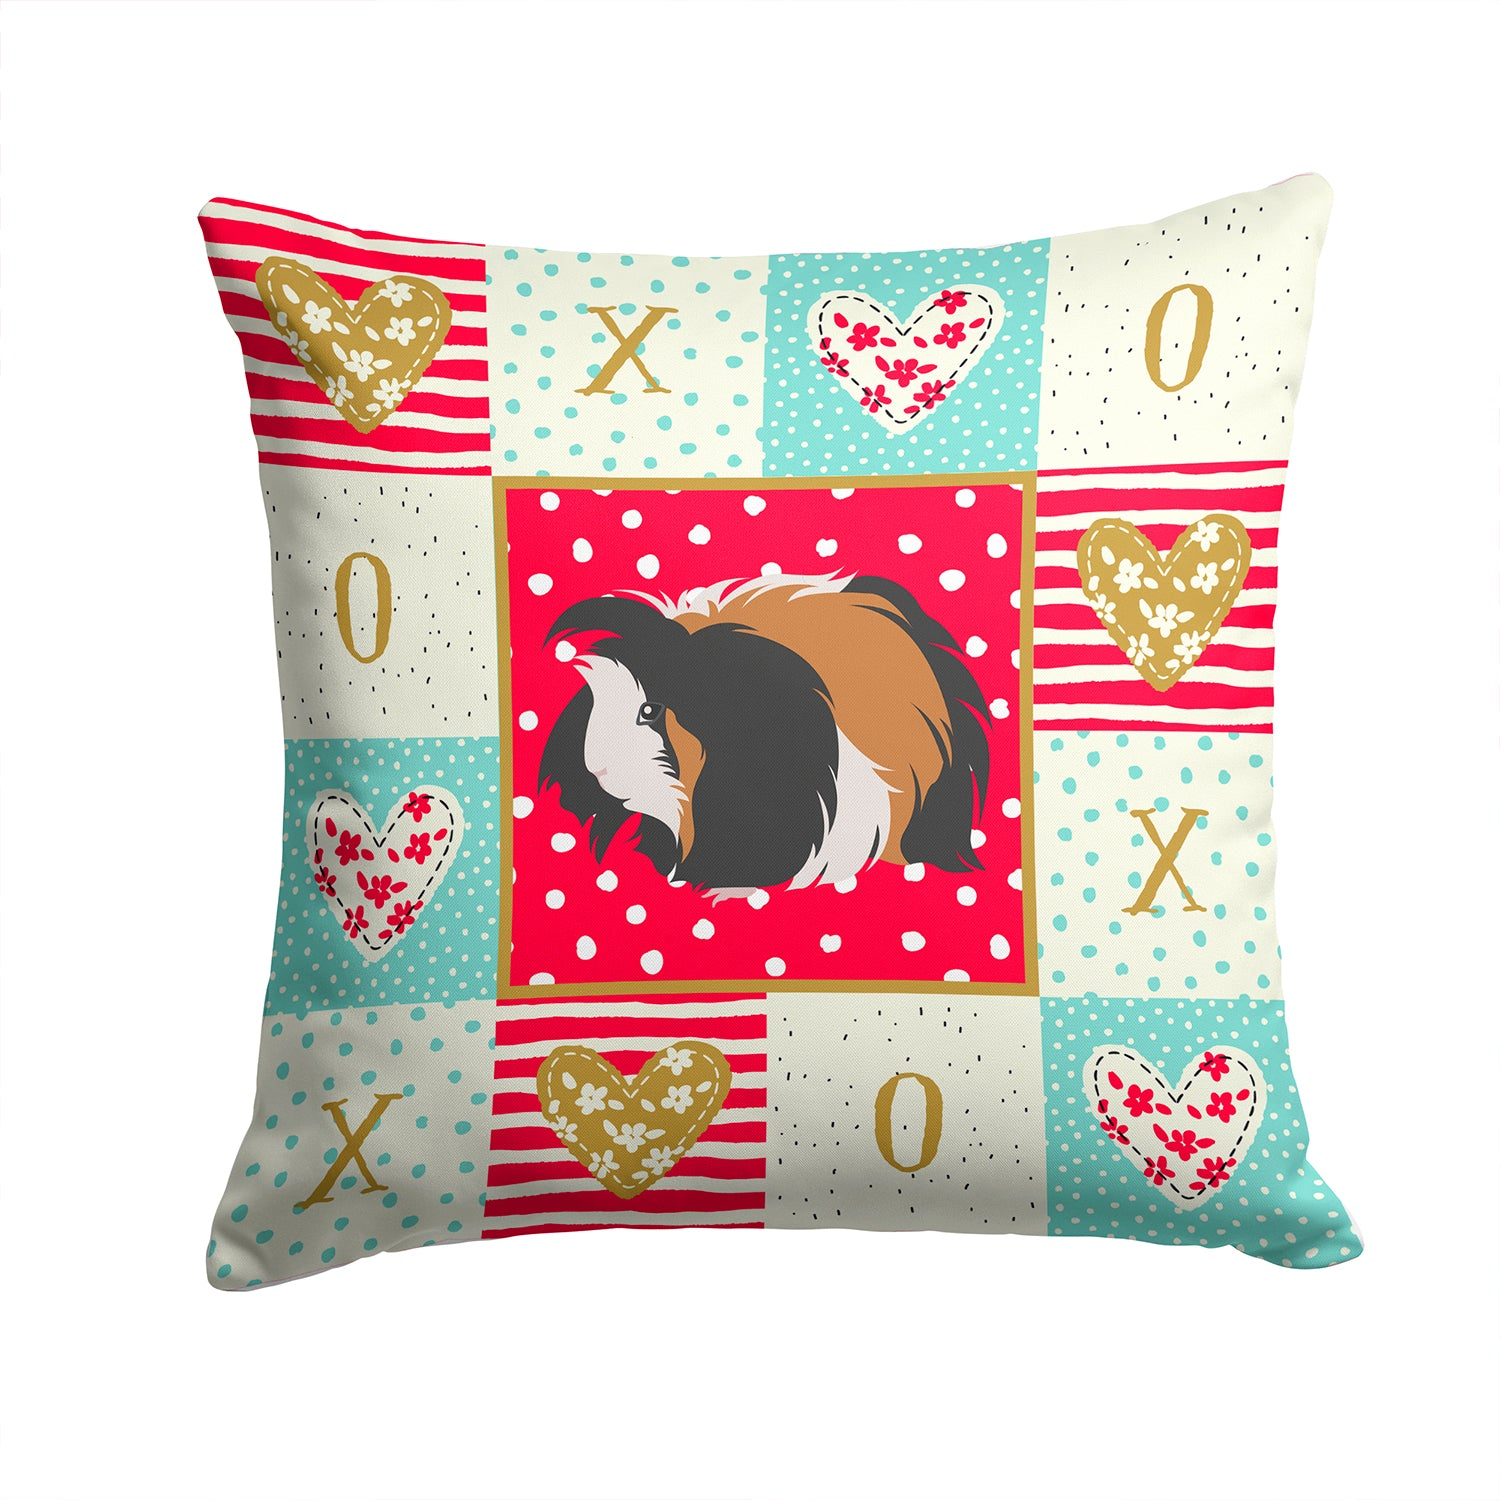 Sheba Guinea Pig Love Fabric Decorative Pillow CK5433PW1414 by Caroline's Treasures